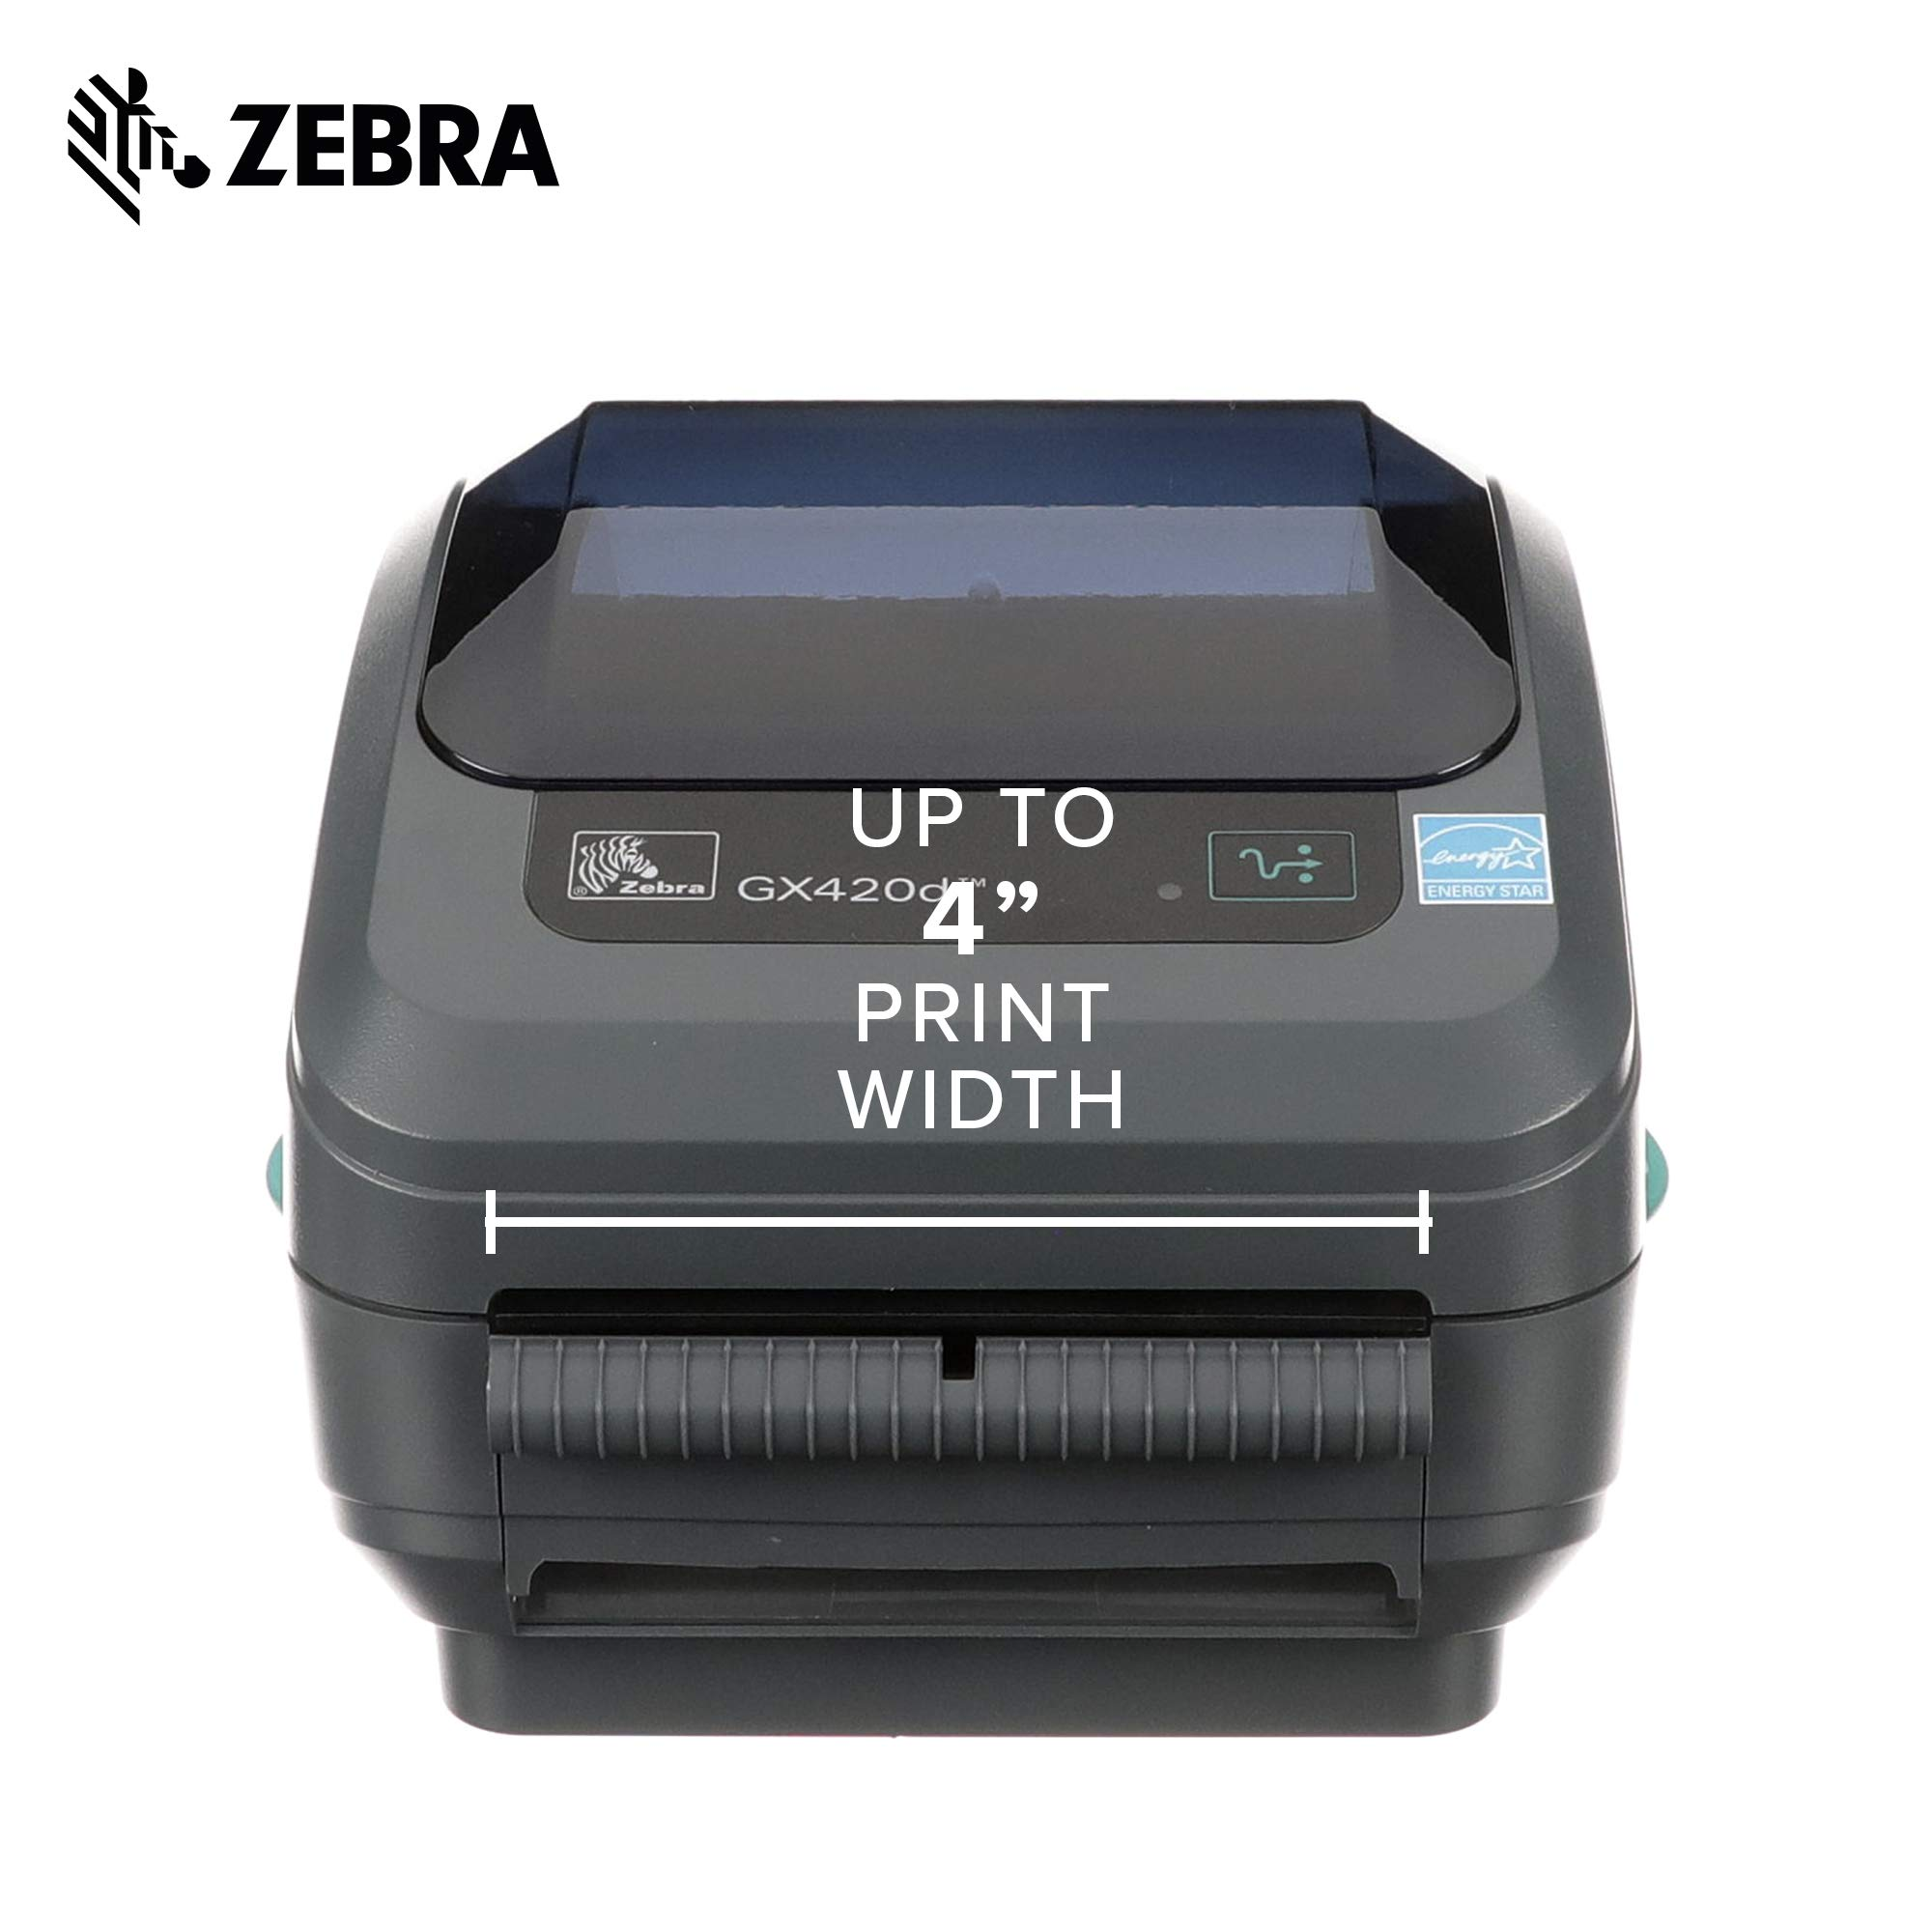 Zebra - GX420d Direct Thermal Desktop Printer for Labels, Receipts, Barcodes, Tags, and Wrist Bands - Print Width of 4 in - USB, Serial, and Ethernet Port Connectivity (Includes Peeler) by ZEBRA (Image #3)